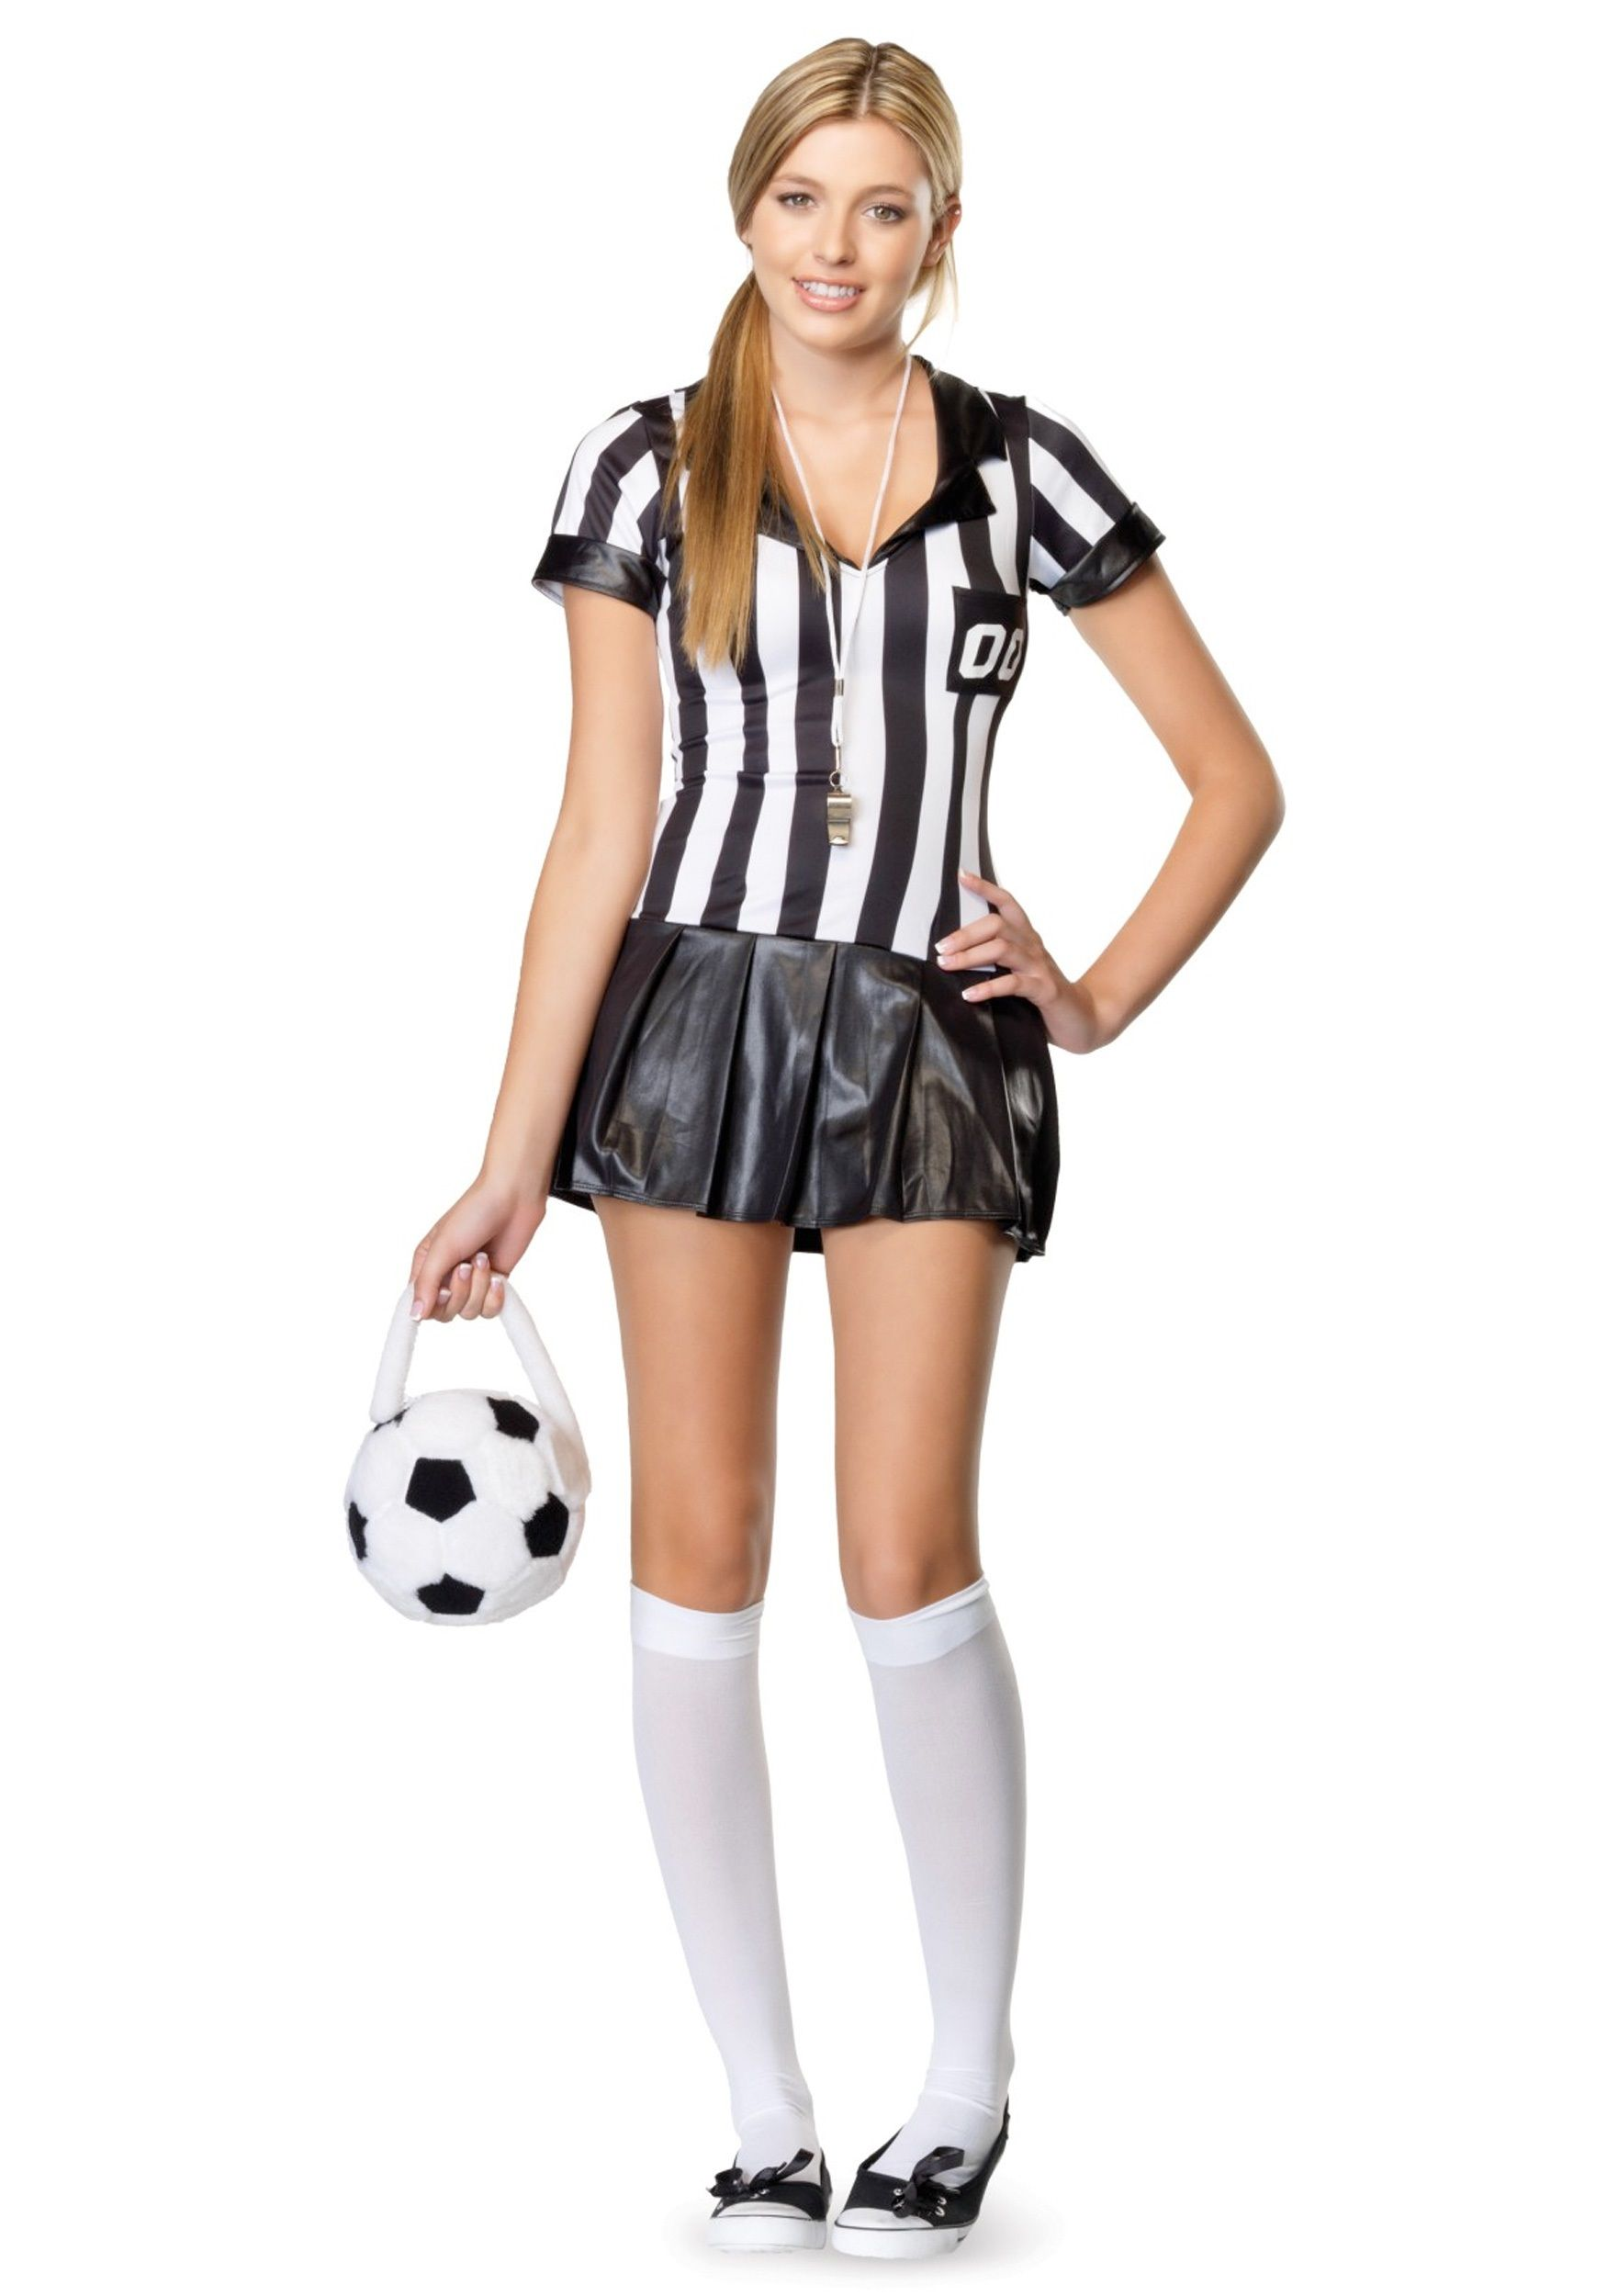 Cuteteencostumes home costume ideas sports costumes referee cuteteencostumes home costume ideas sports costumes referee costumes girls teen referee solutioingenieria